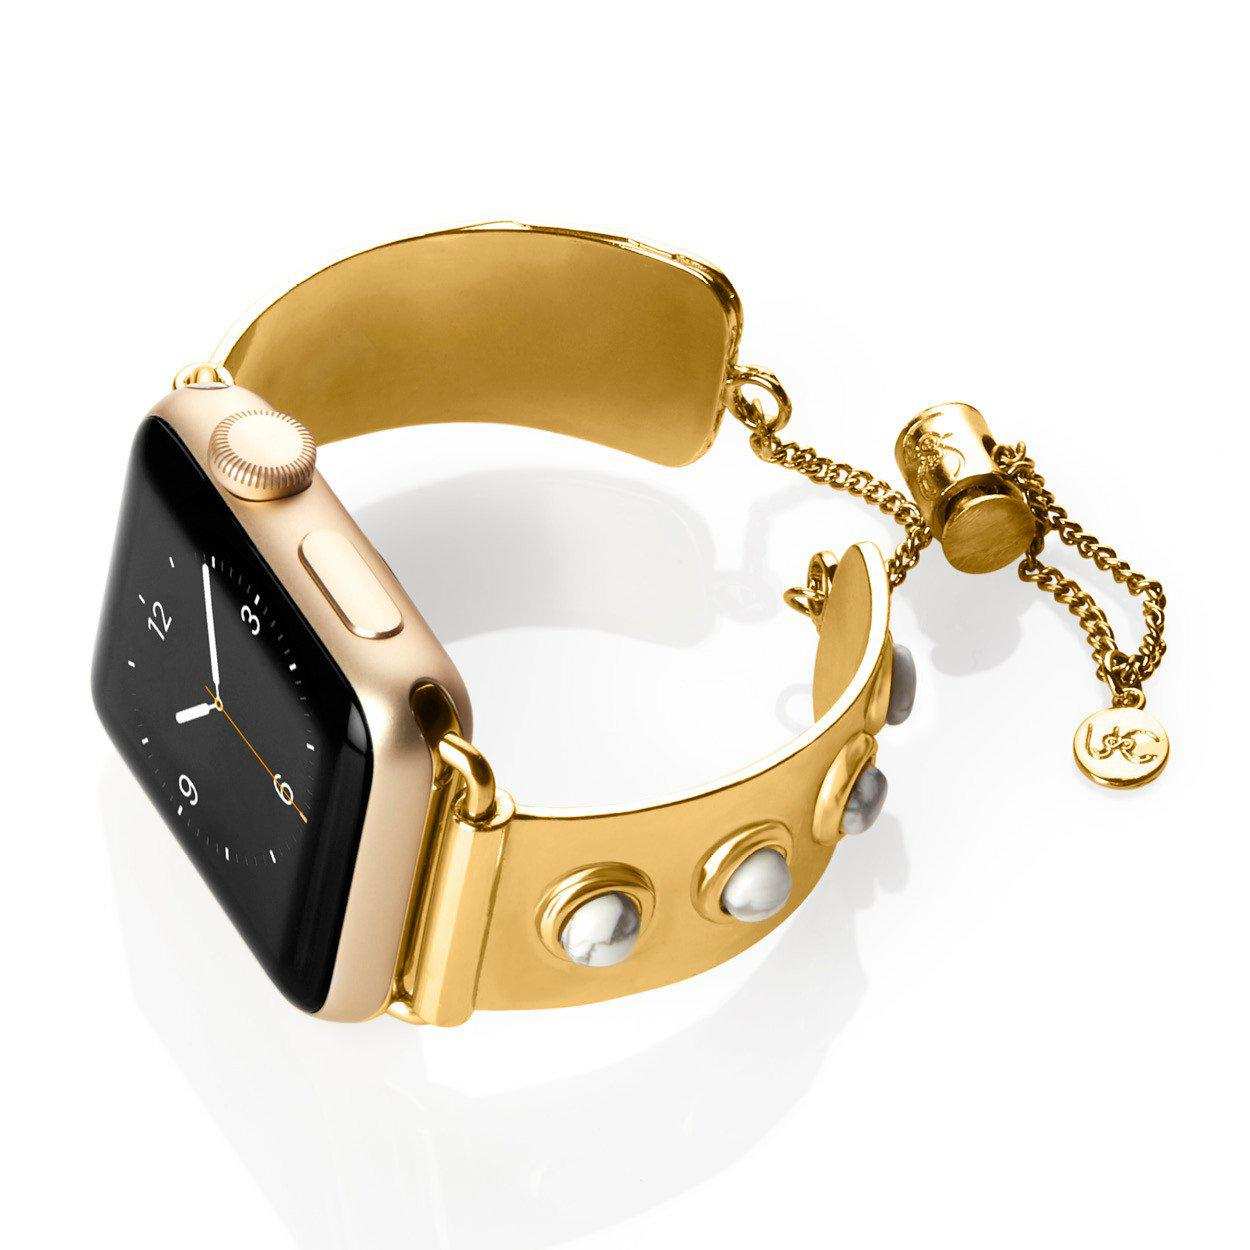 7c0fcec98 Lola Mini Apple Watch Jewelry Band - Browse Our Designer Cuffs - The ...